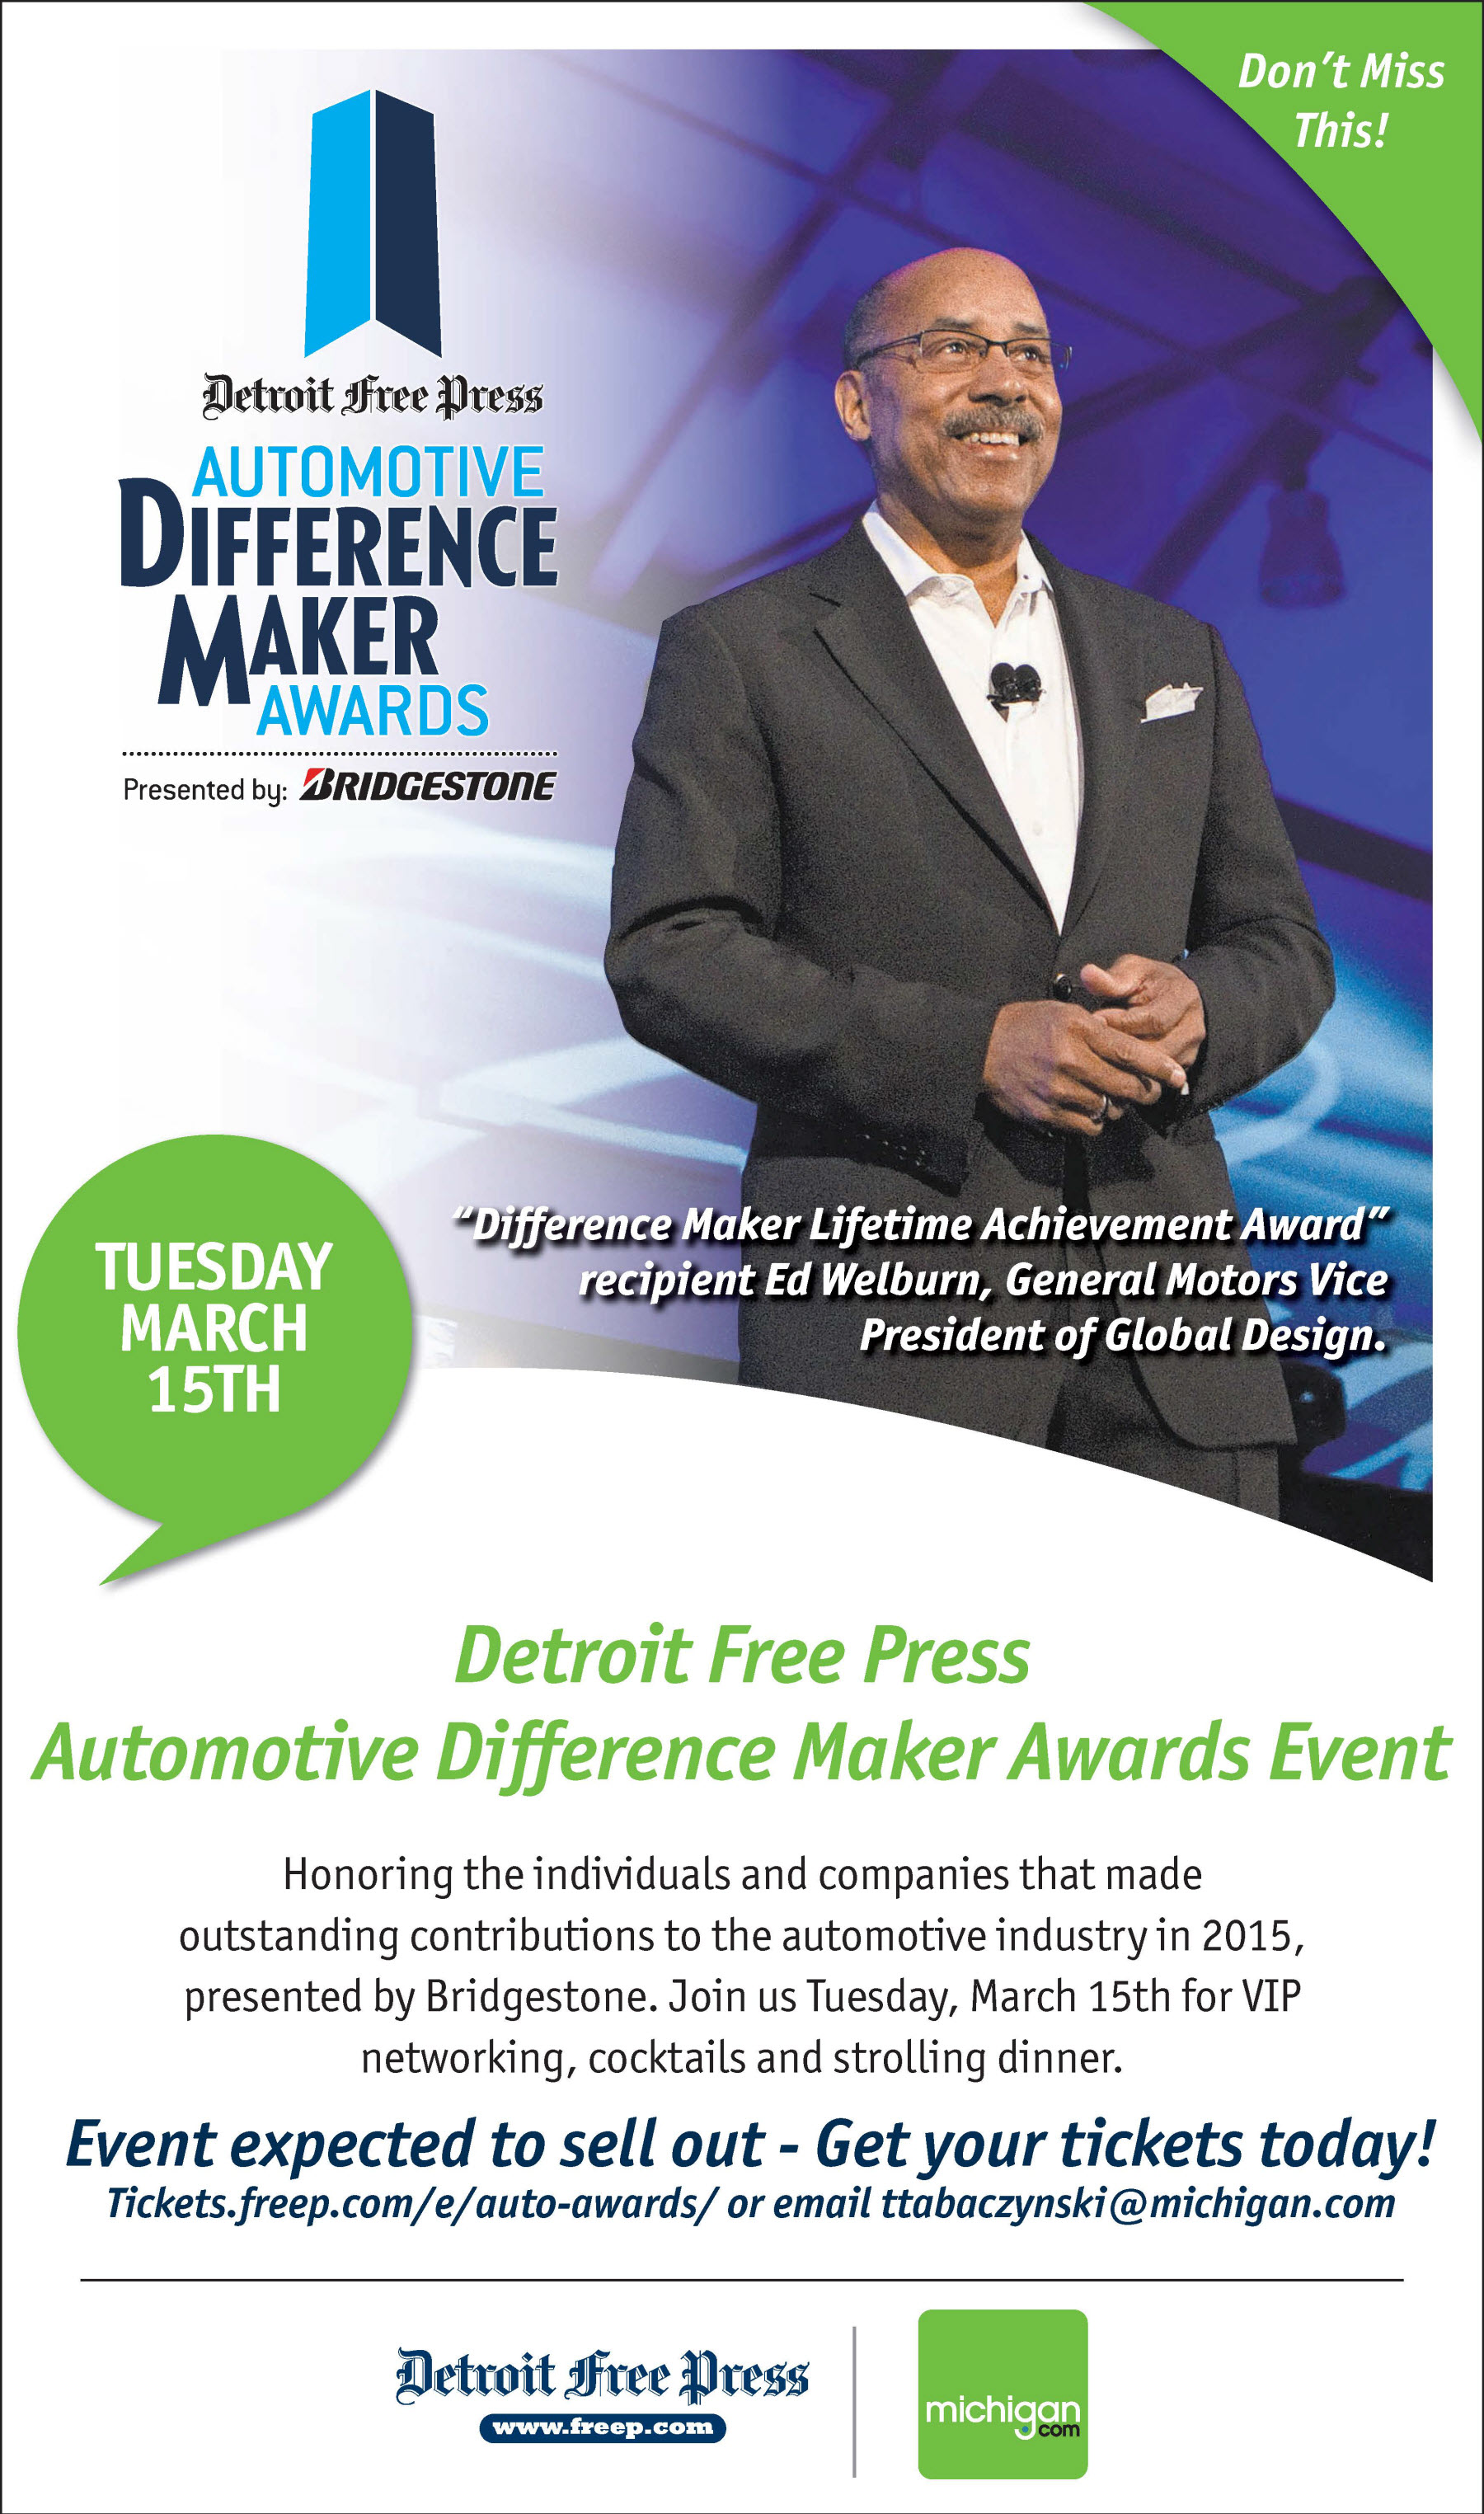 The 2016 Detroit Free Press Automotive Difference Makers Awards